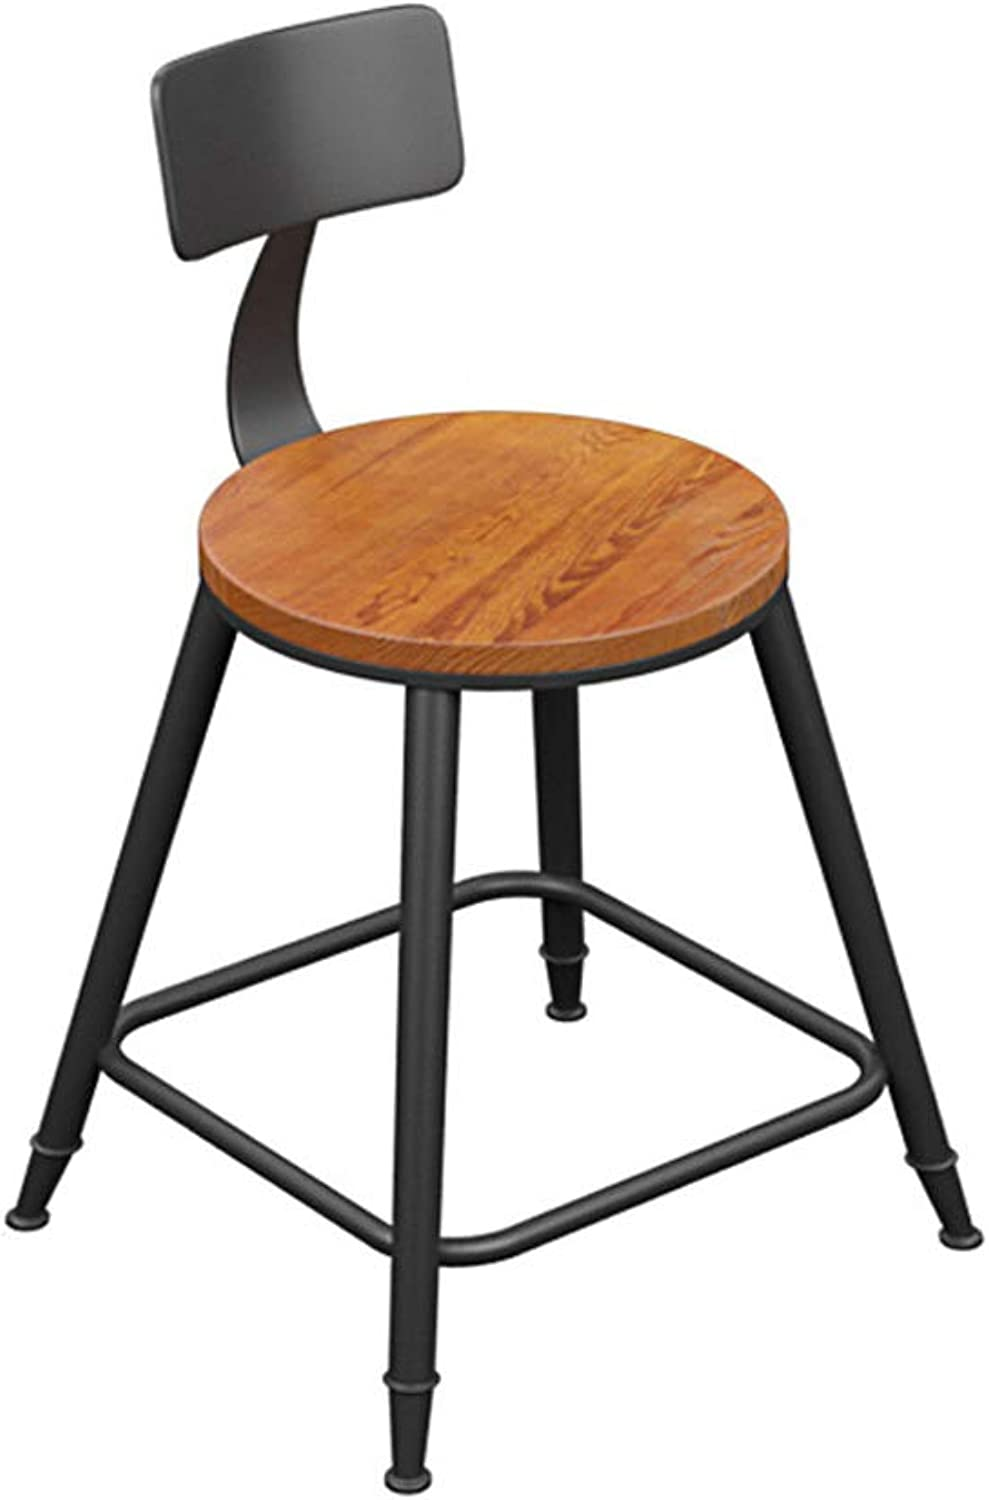 Jiu Si- Iron Bar Stool Bar Stool High Bar Chair High Stool High Chair Bar Stool Bar Chair Back Front Chair bar Chair (Size   Sitting height45)